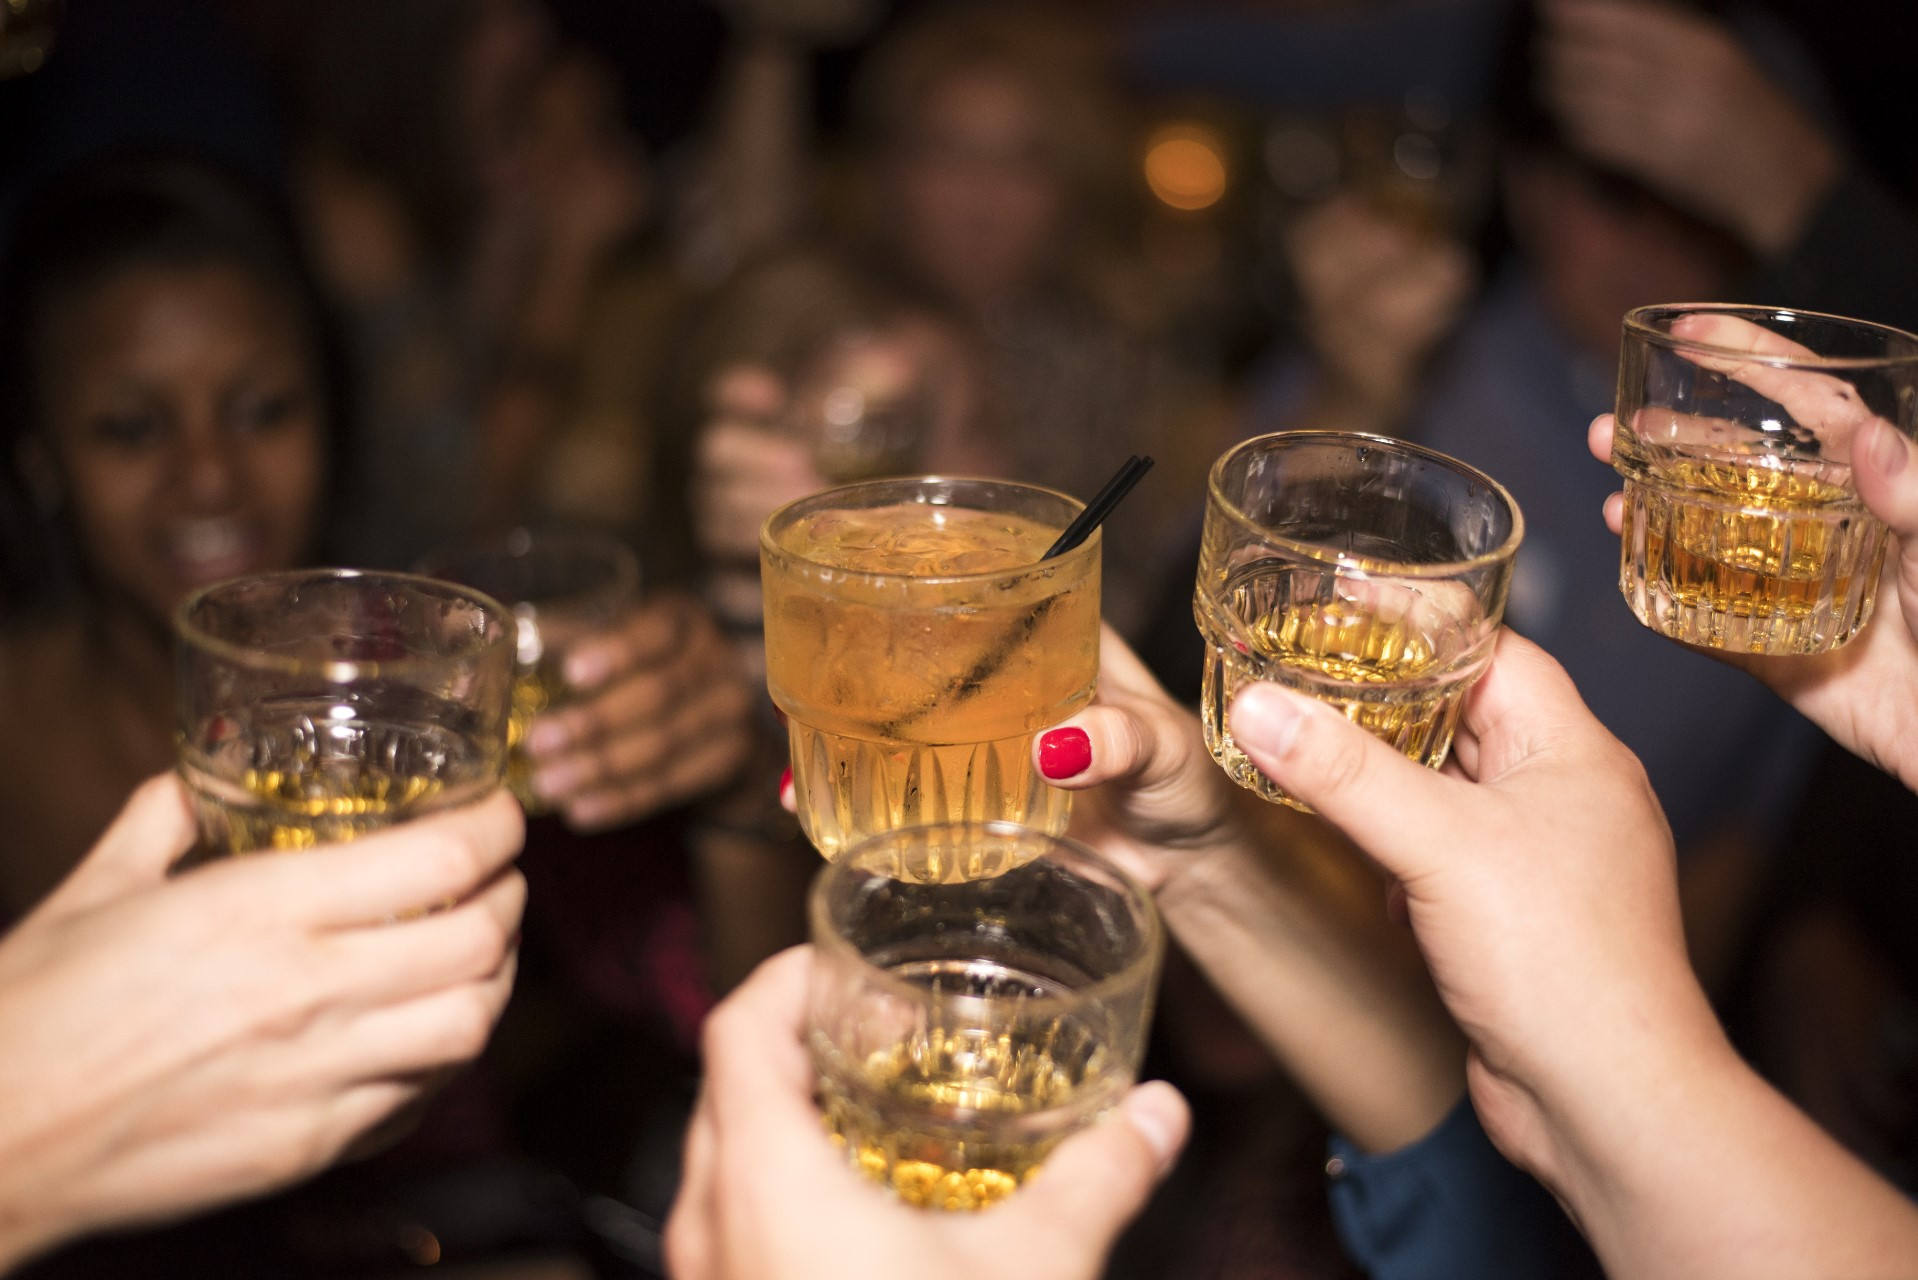 group of people toast whiskey glasses - new york in december